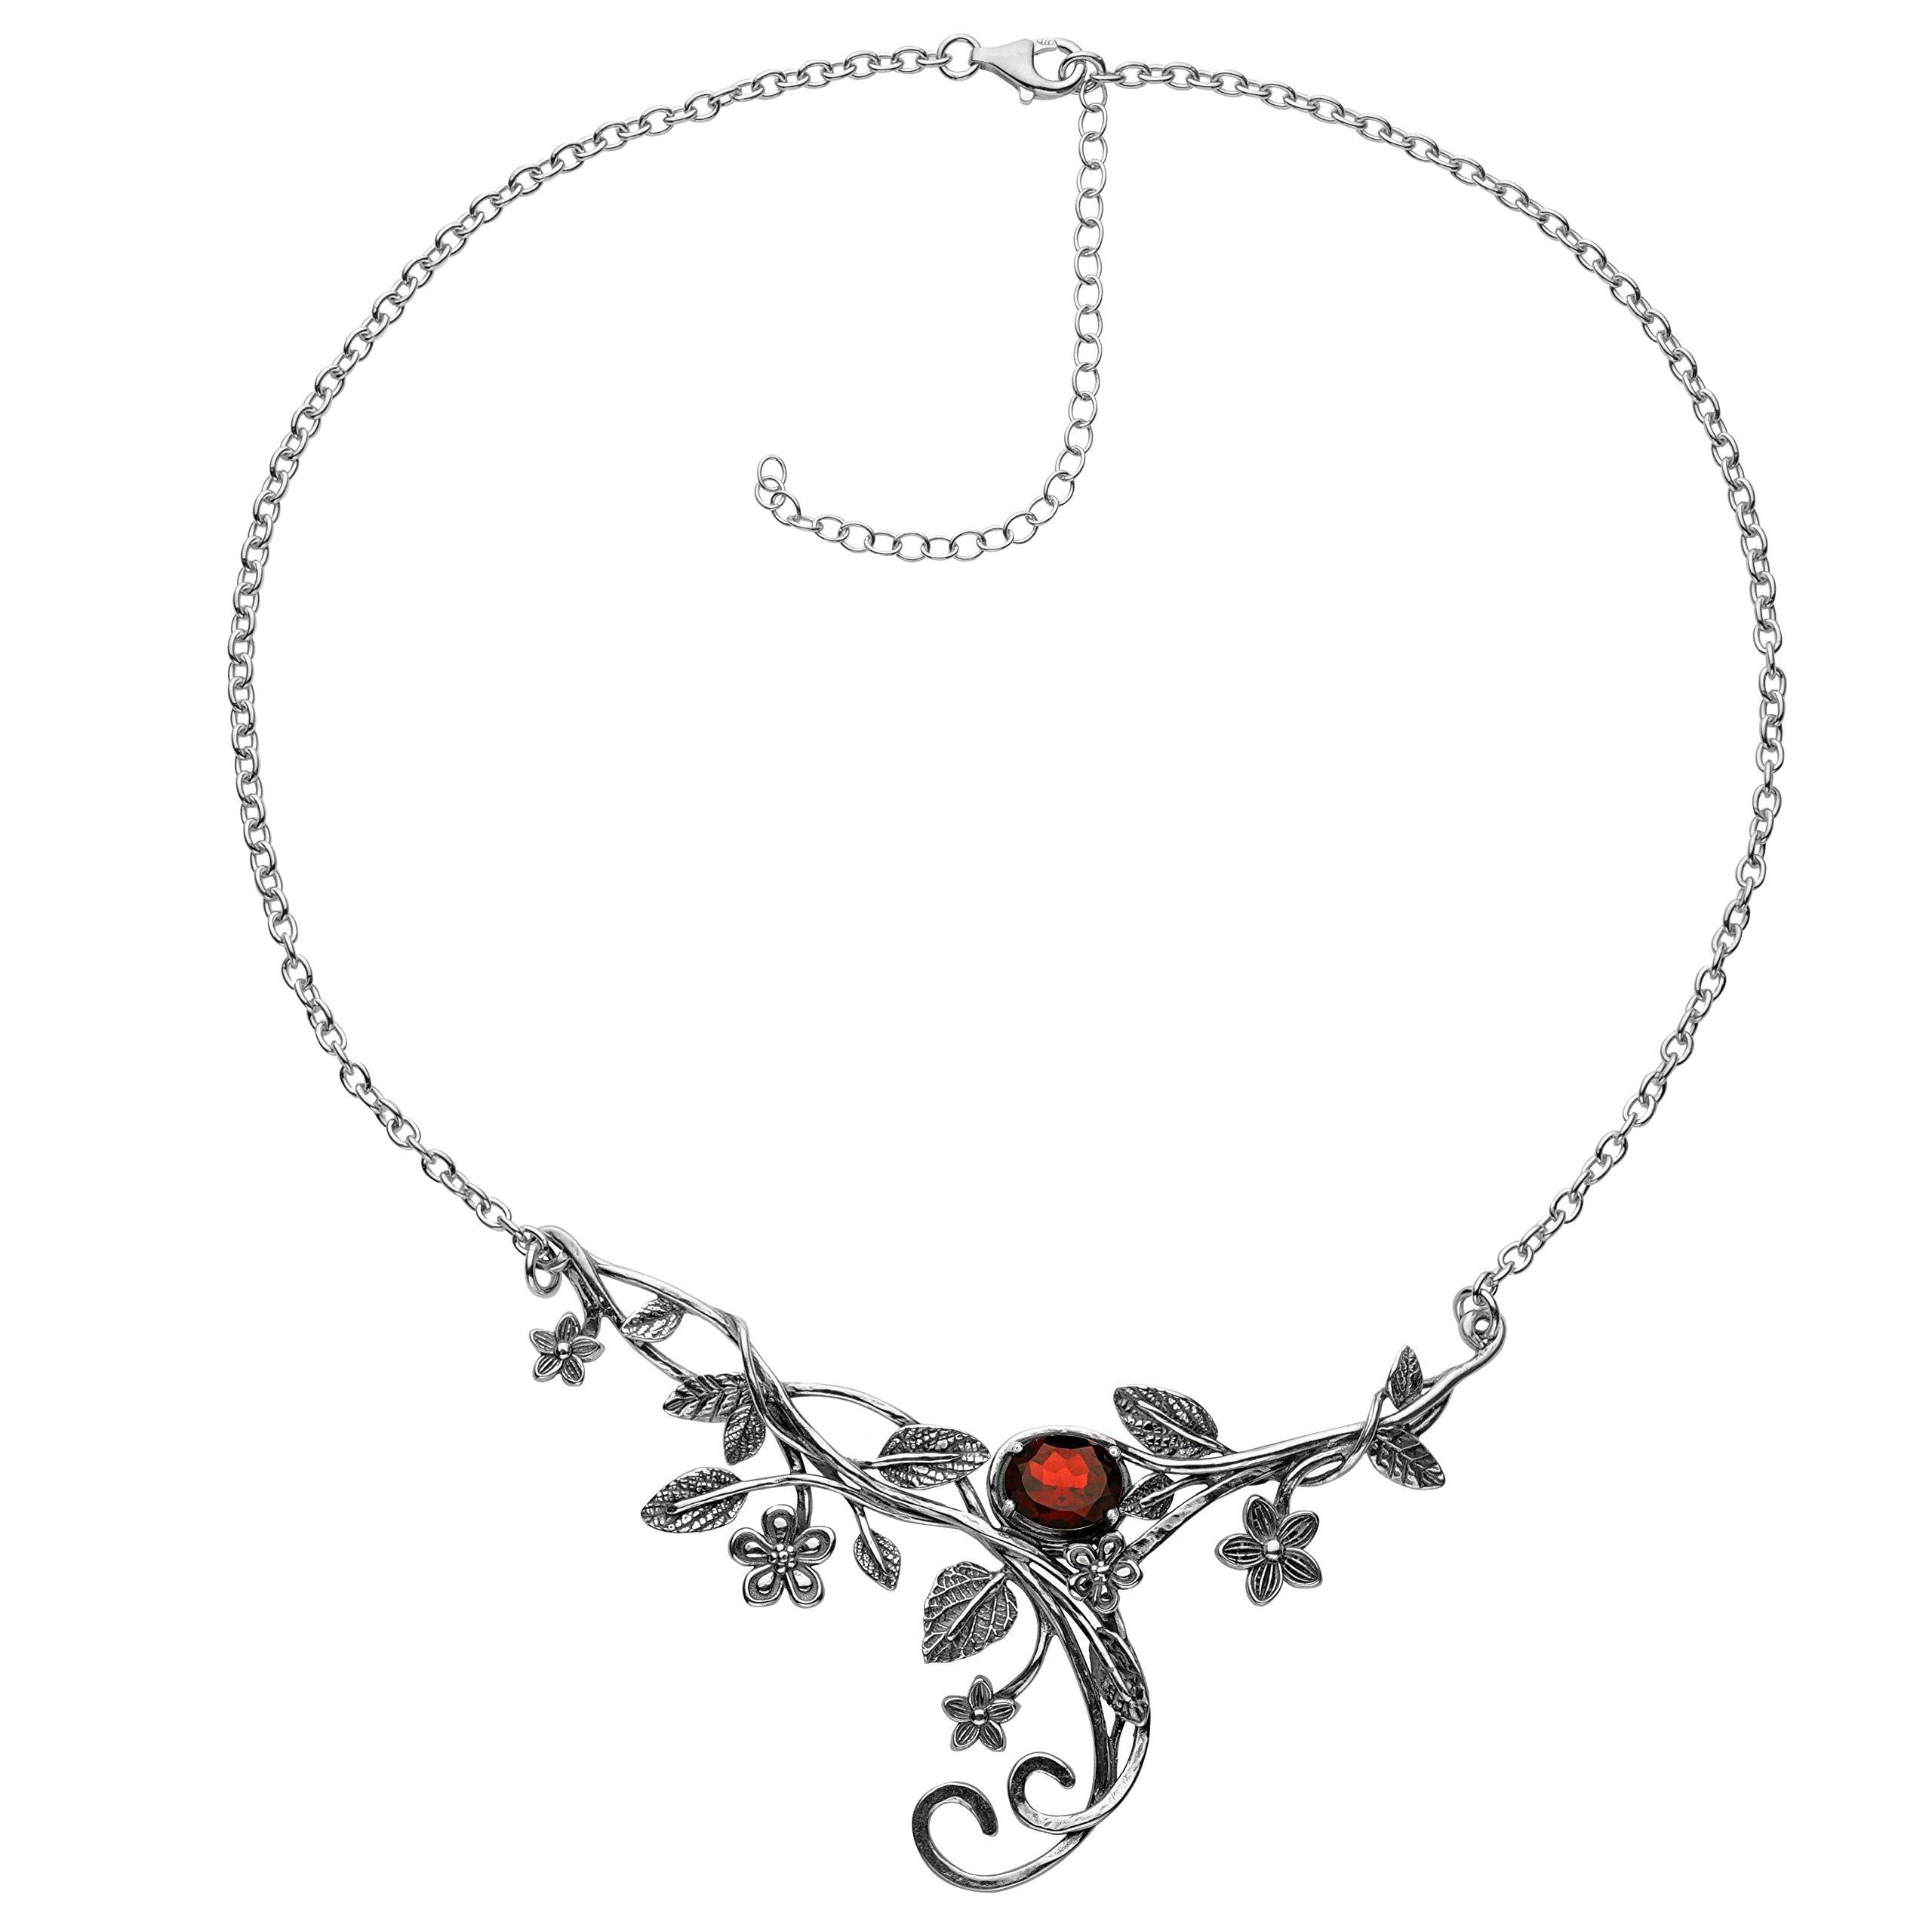 ♥925 Sterling Silver Garnet Floral Swirl Necklace by Paz Creations Fine Jewelry, Made in Israel